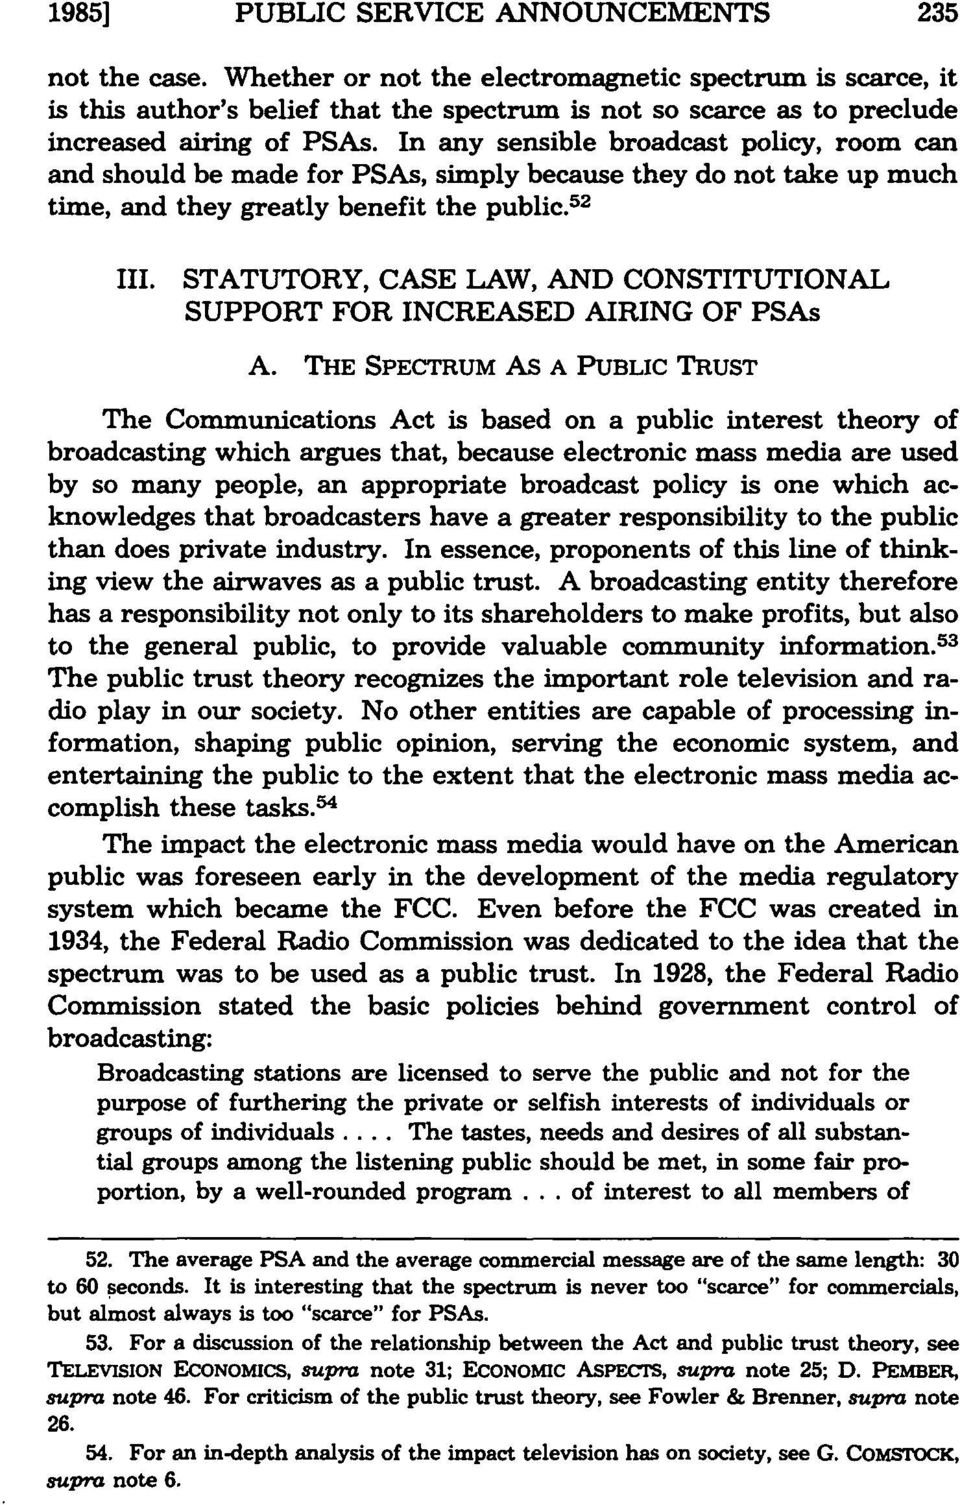 """an analysis of the public interest convenience and necessity Public convenience and necessity (""""cpcn"""") to construct a 138 kv transmission line  due to the lack of any public interest in the siting of the transmission line, its relatively short length, and the fact that the entire construction  prepared a report of its analysis,."""